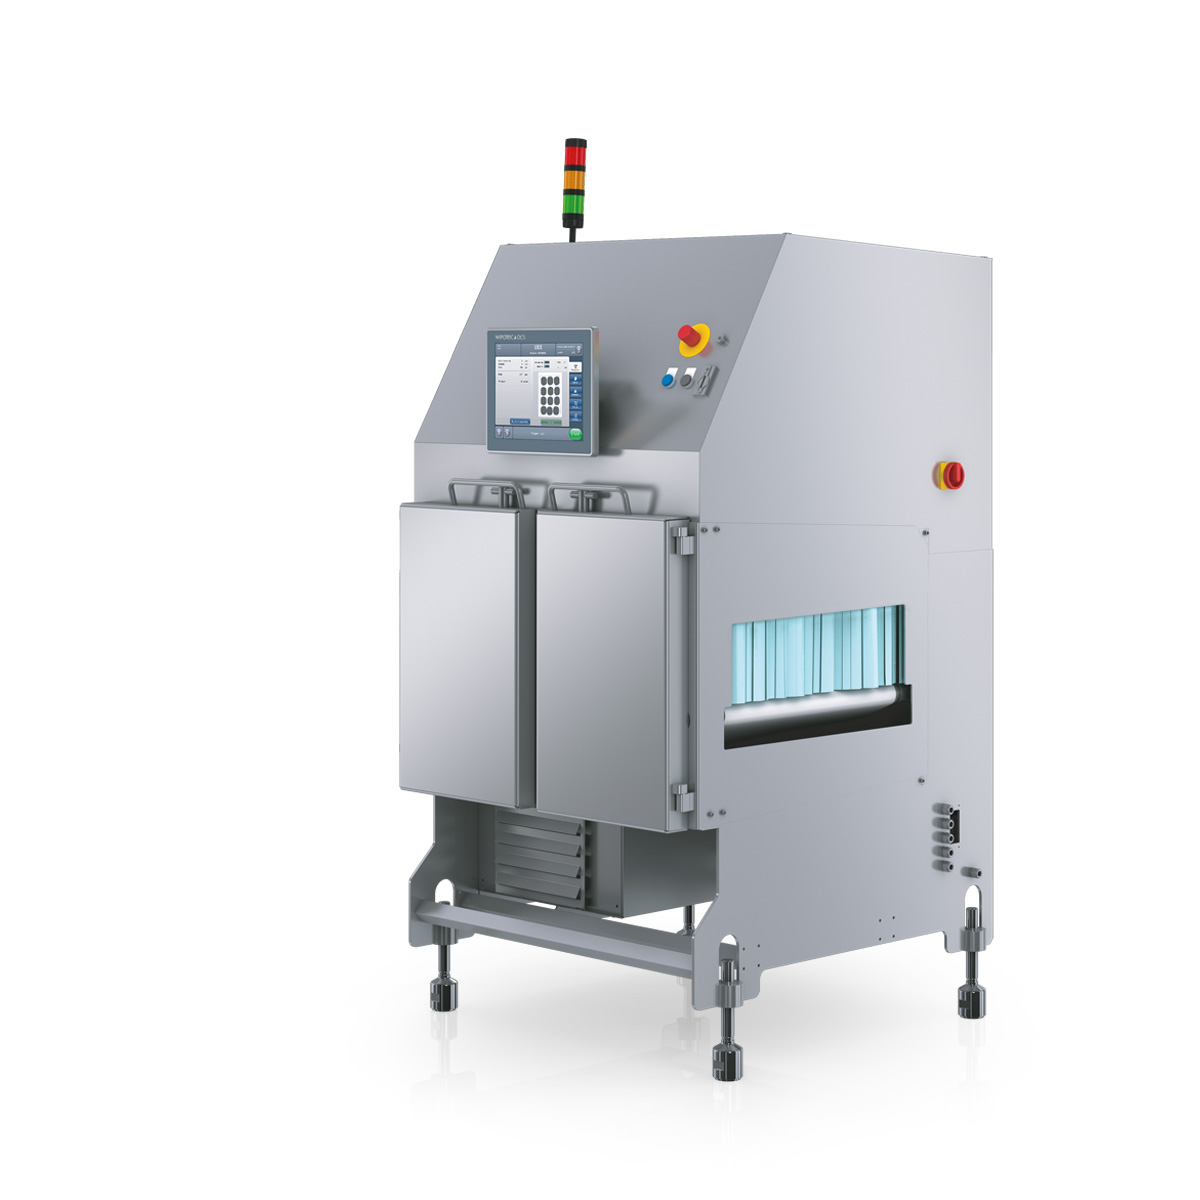 SC-6000 Series X-ray inspection